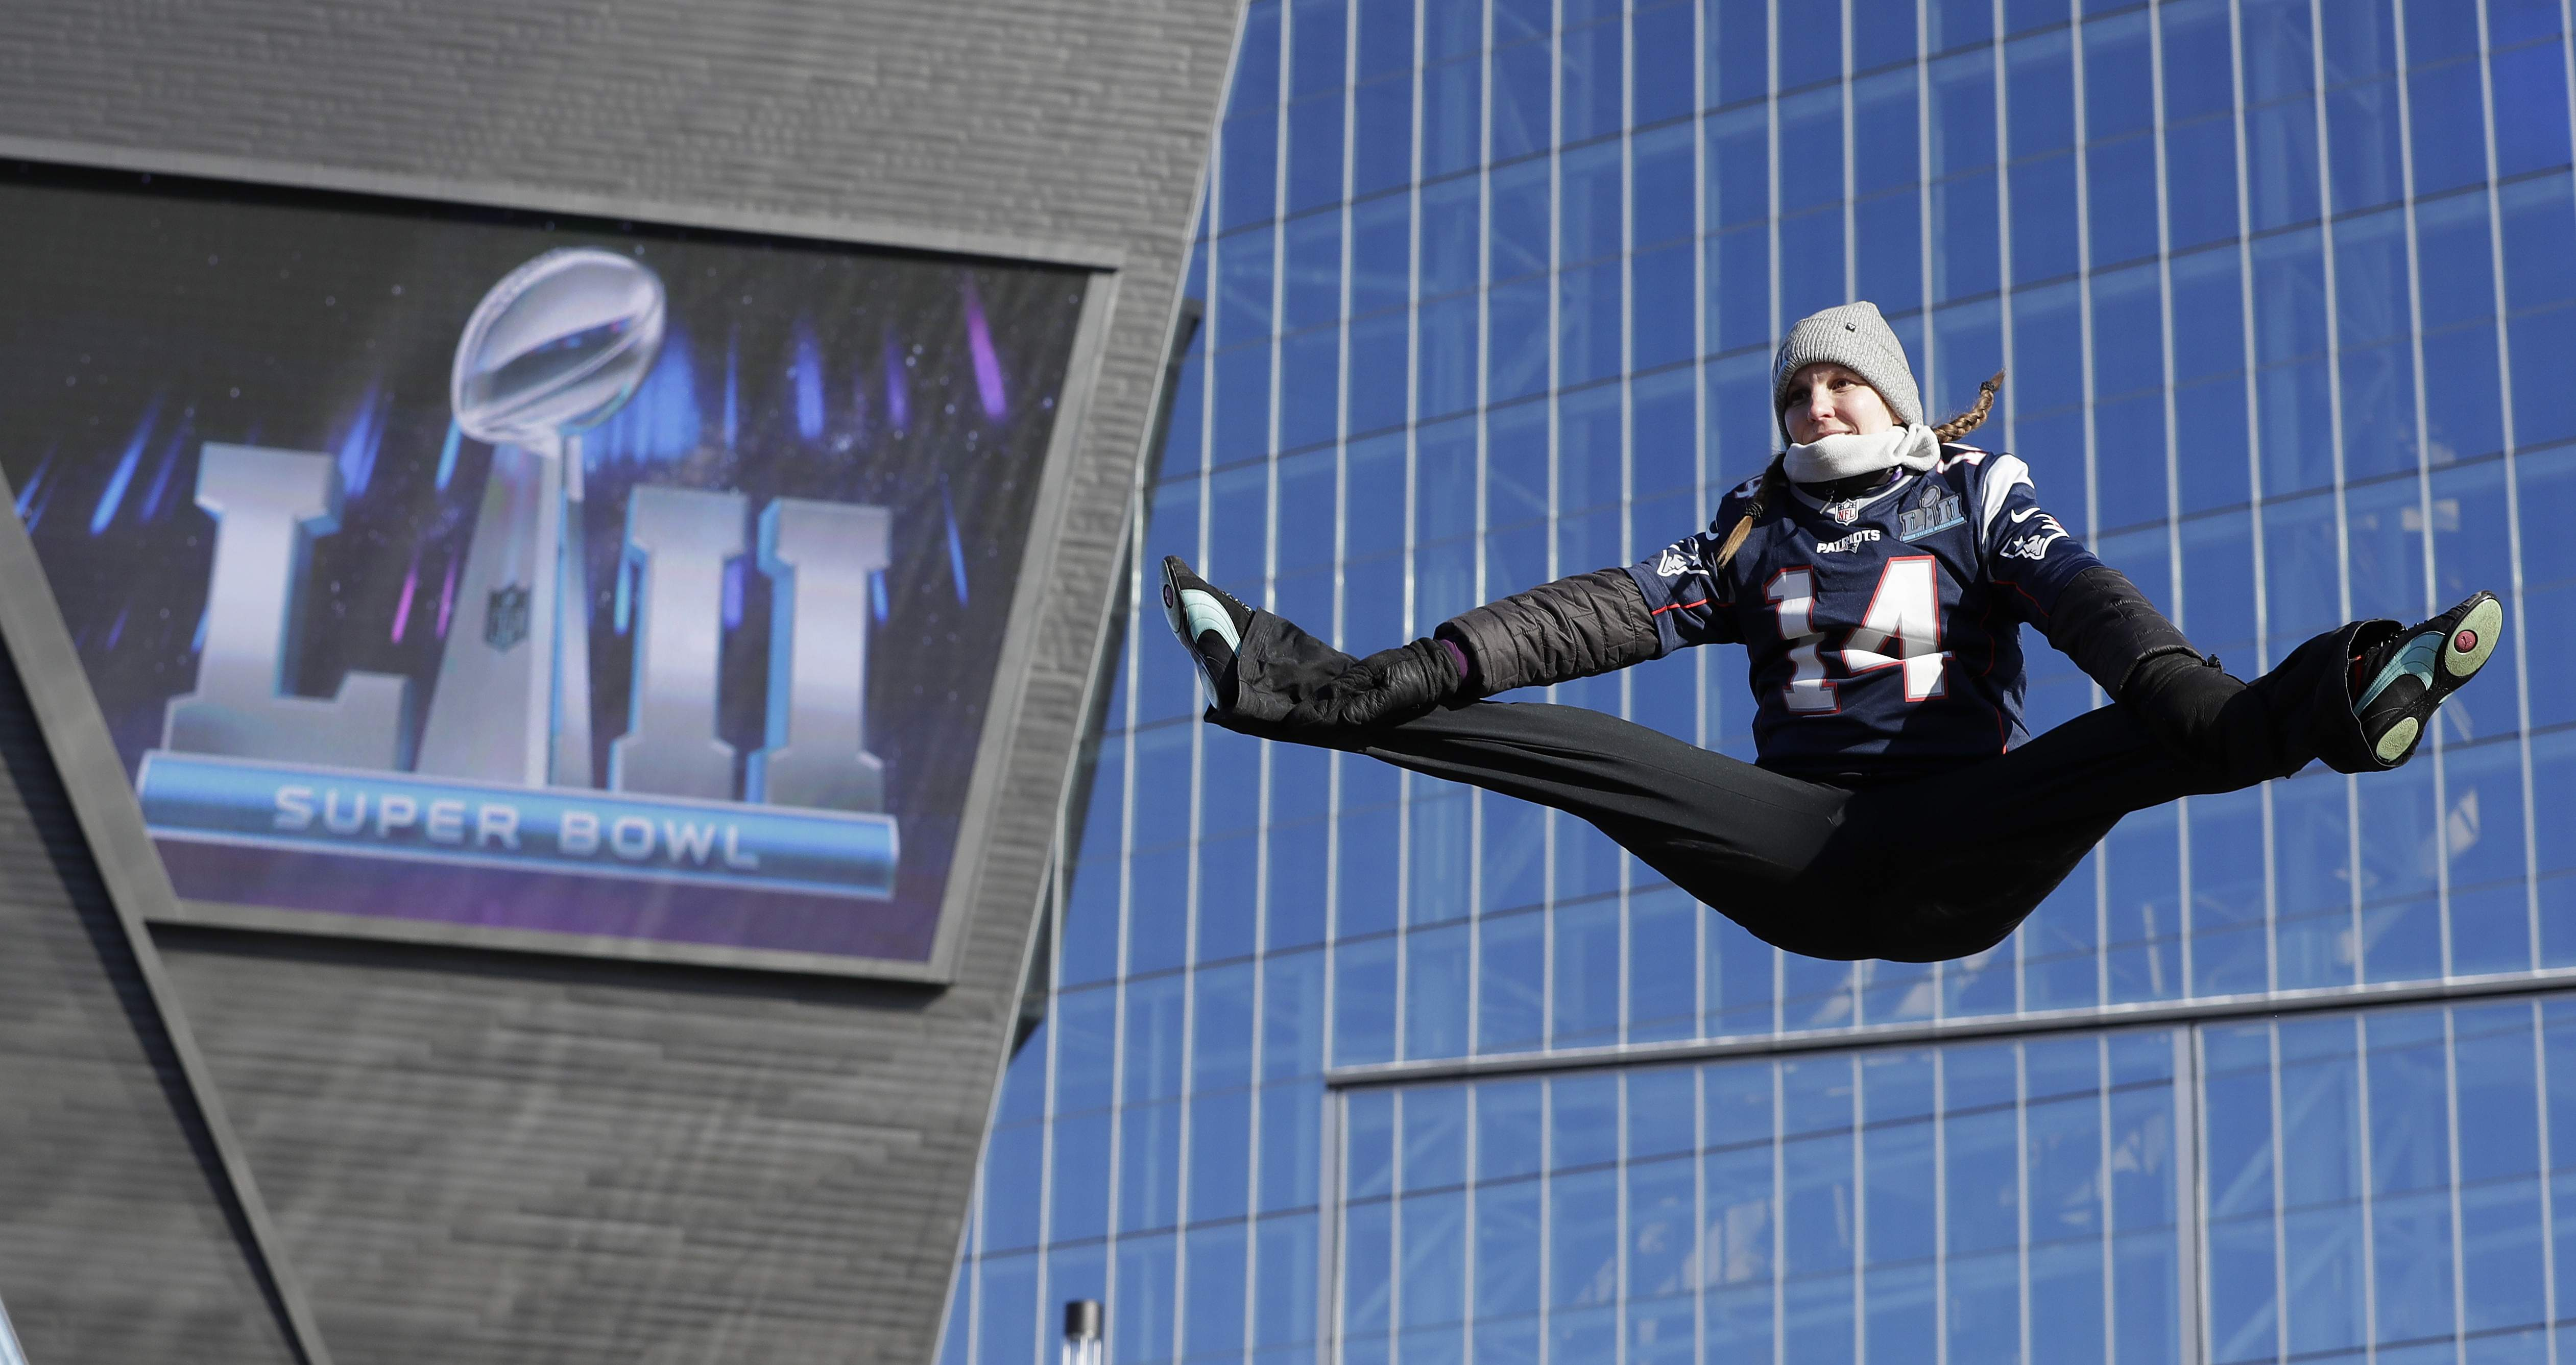 A fan jumps on a trampoline outside U.S. Bank Stadium before the NFL Super Bowl 52 football game between the Philadelphia Eagles and the New England Patriots Sunday, Feb. 4, 2018, in Minneapolis. (AP Photo/Mark Humphrey)